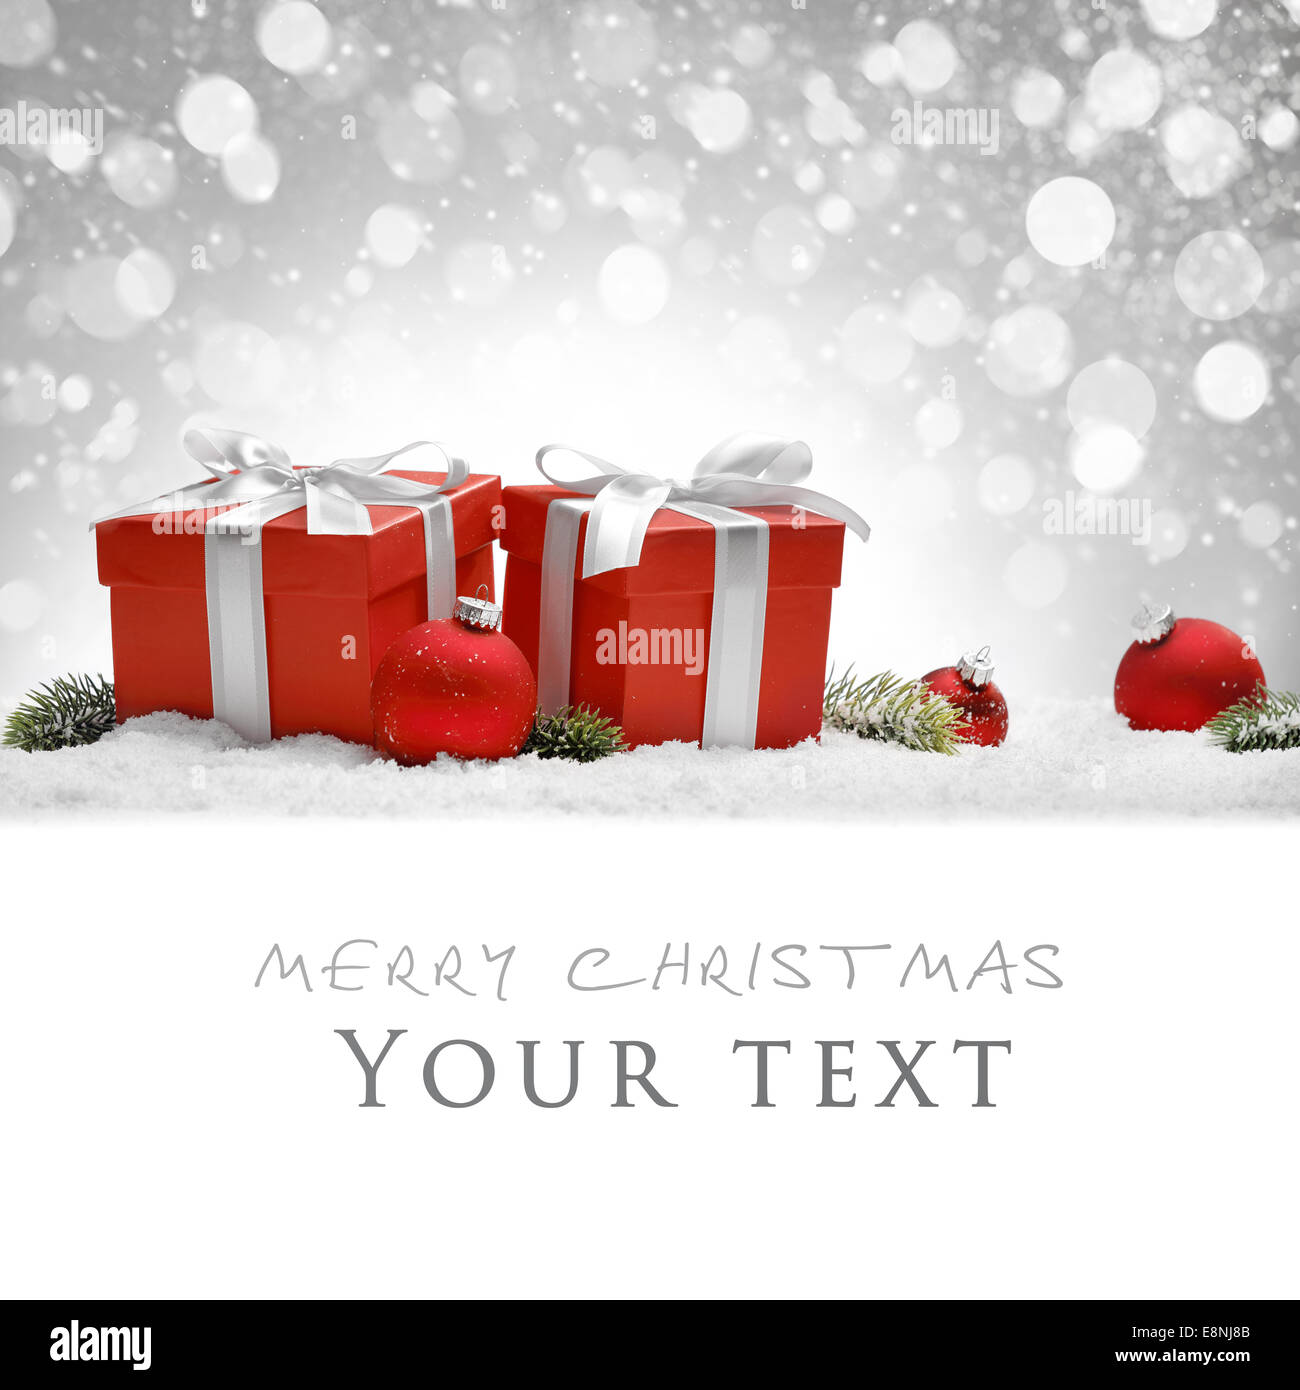 Christmas Legend Stock Photos & Christmas Legend Stock Images - Alamy